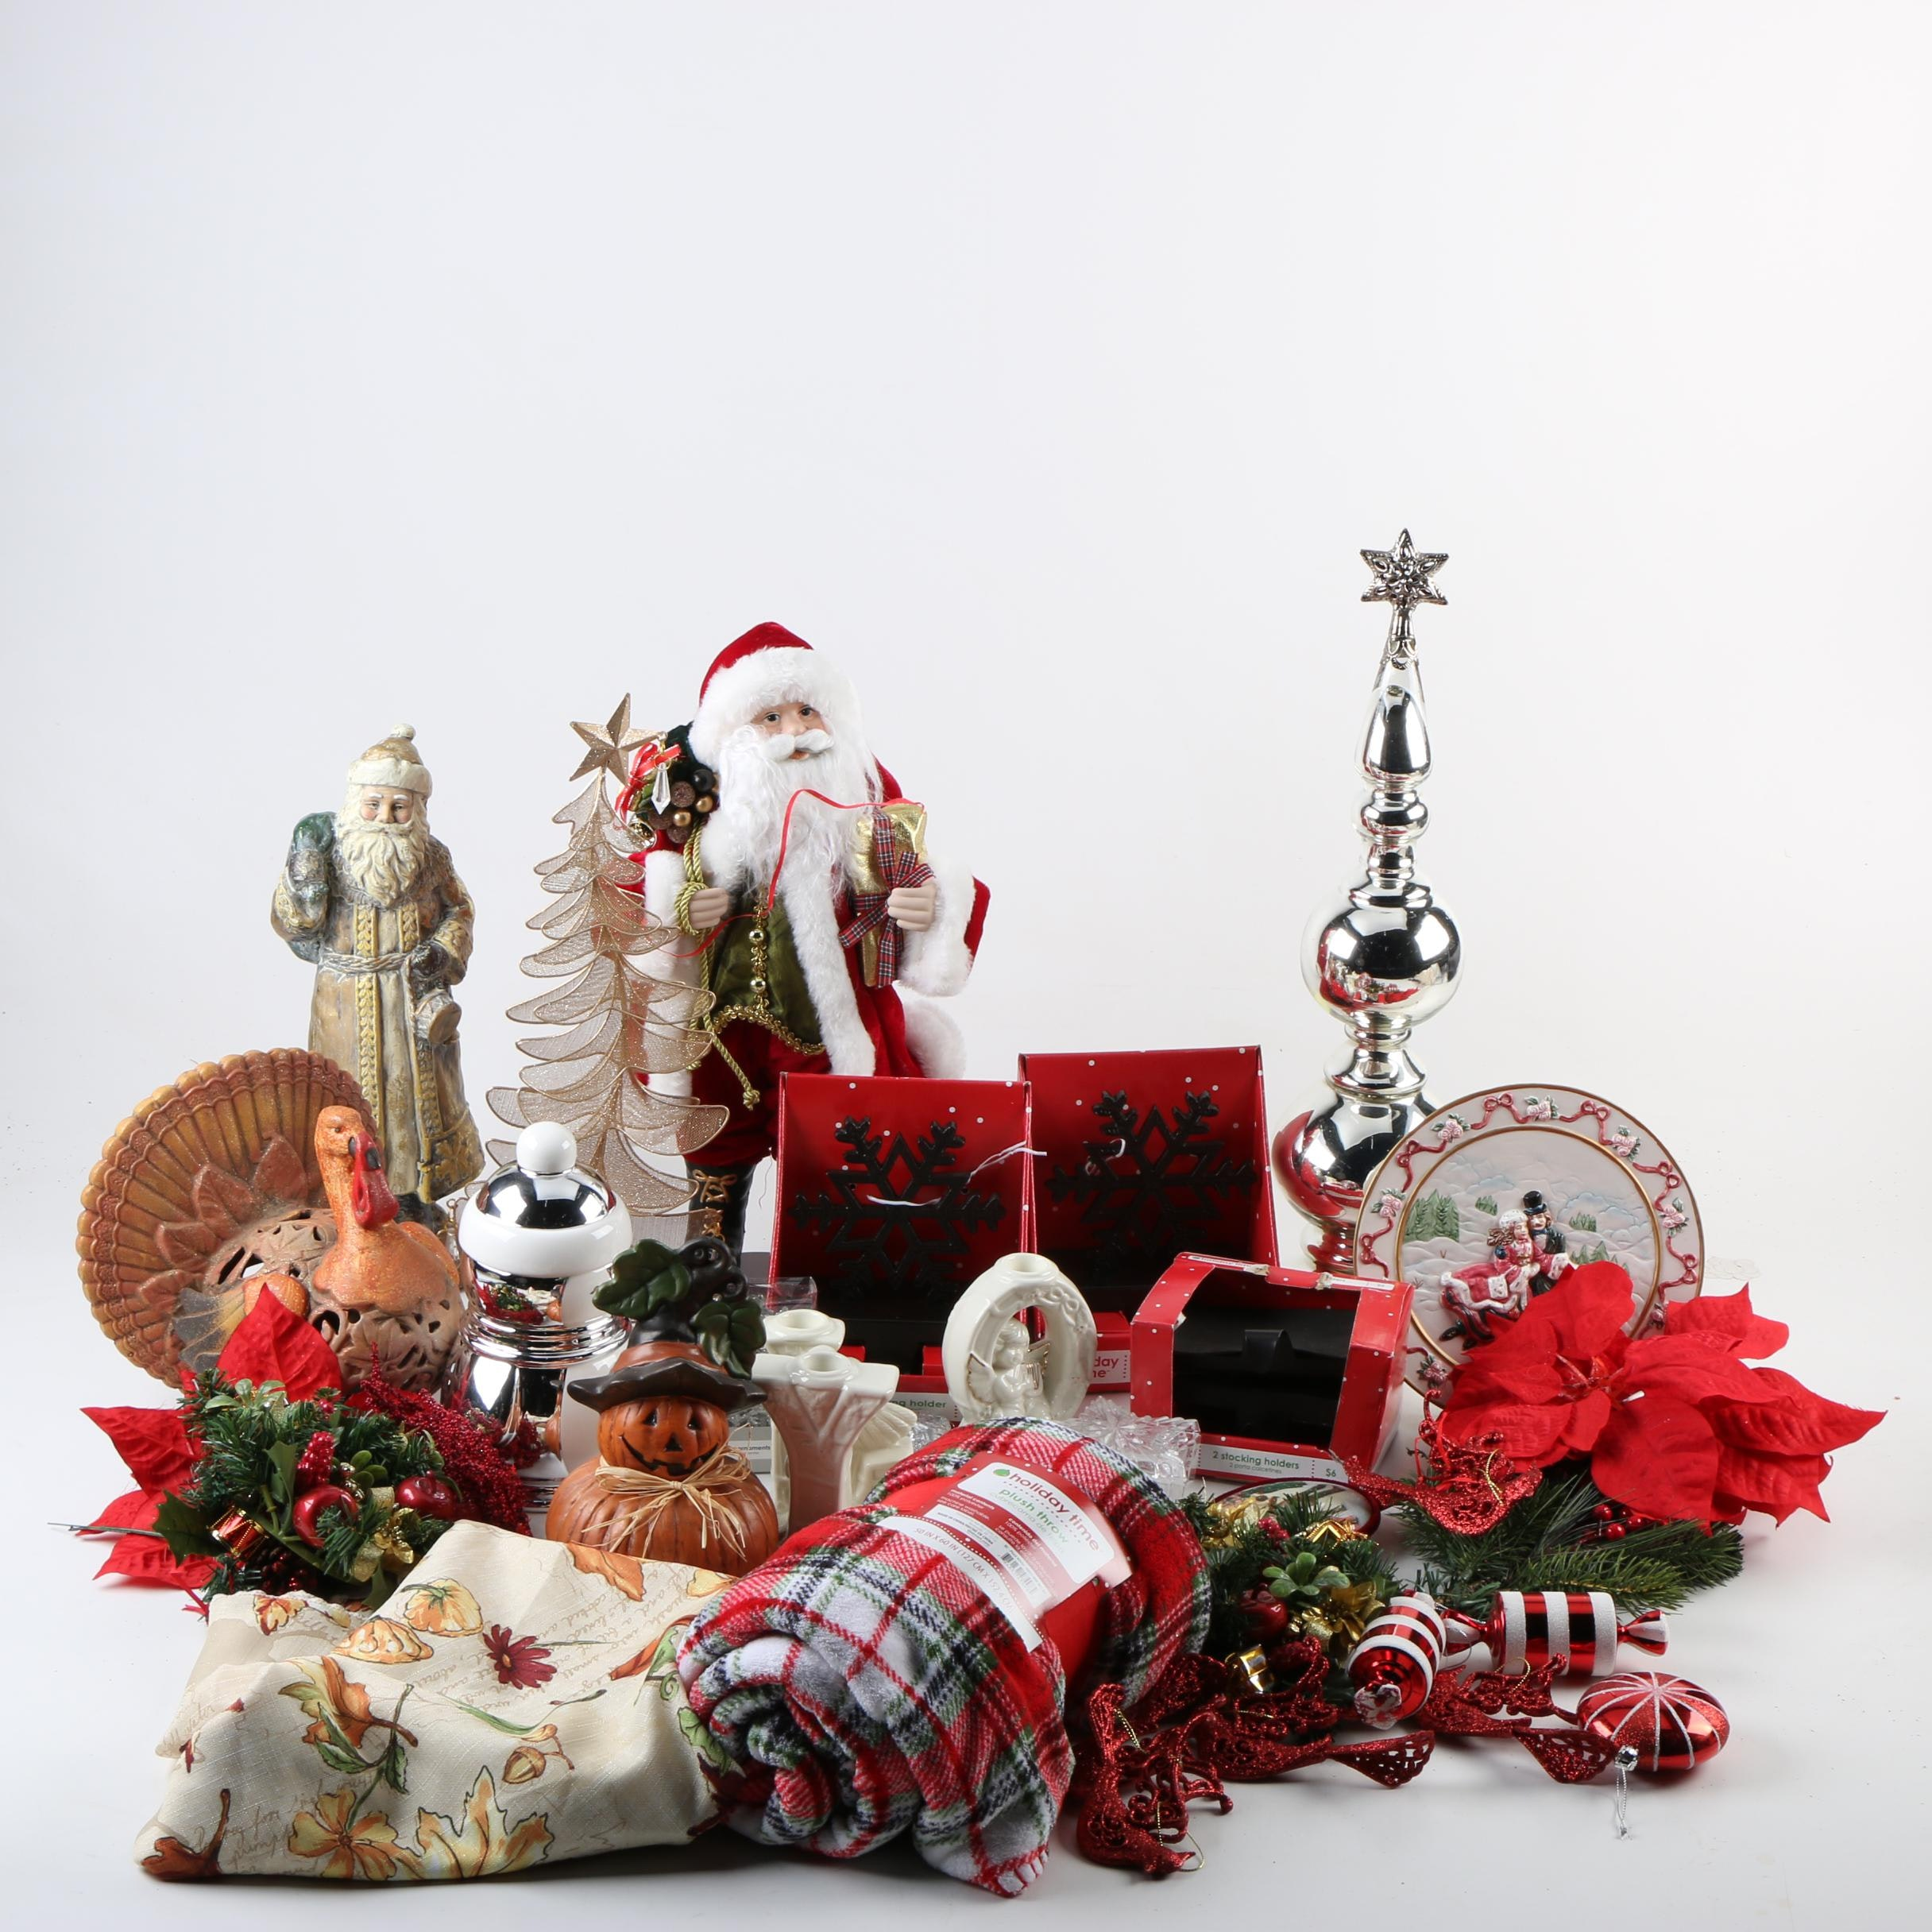 Seasonal Accessories Including Figurines and Ornaments